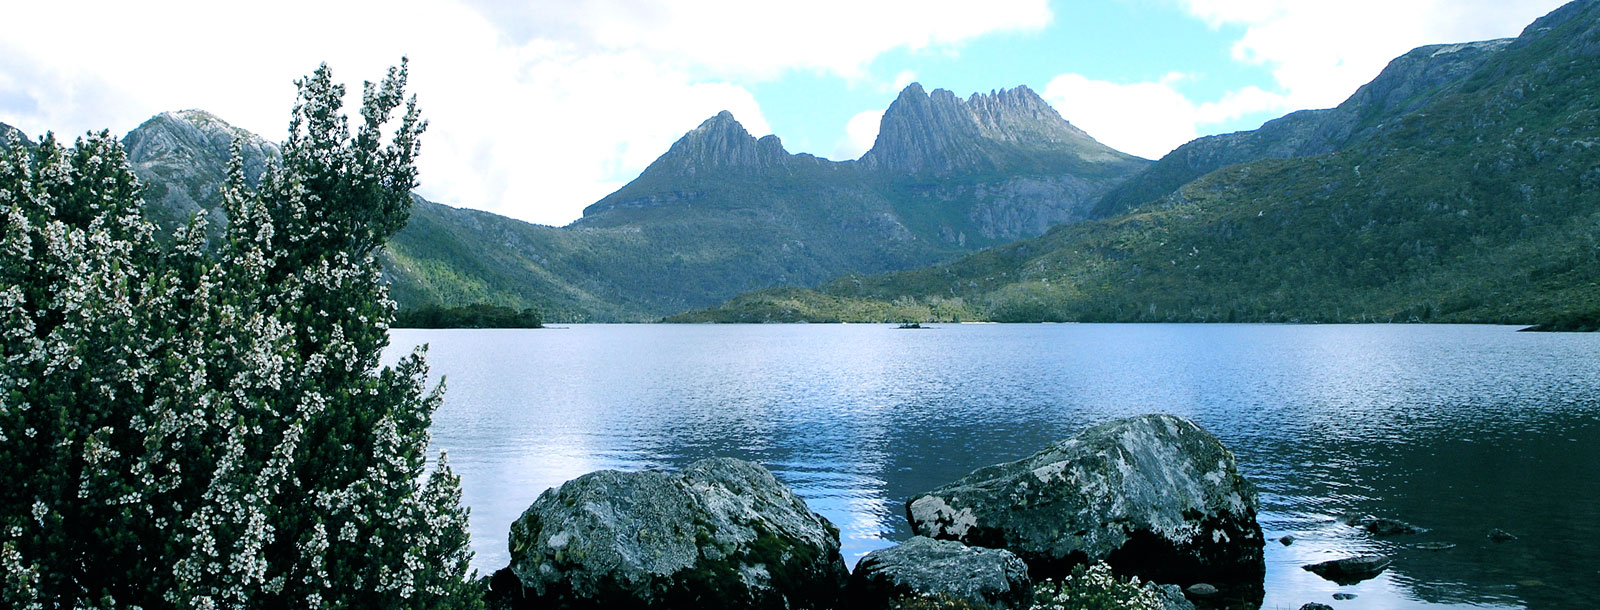 Cradle Mountain from Lake Dove lookout on Tasmania National Parks Tour